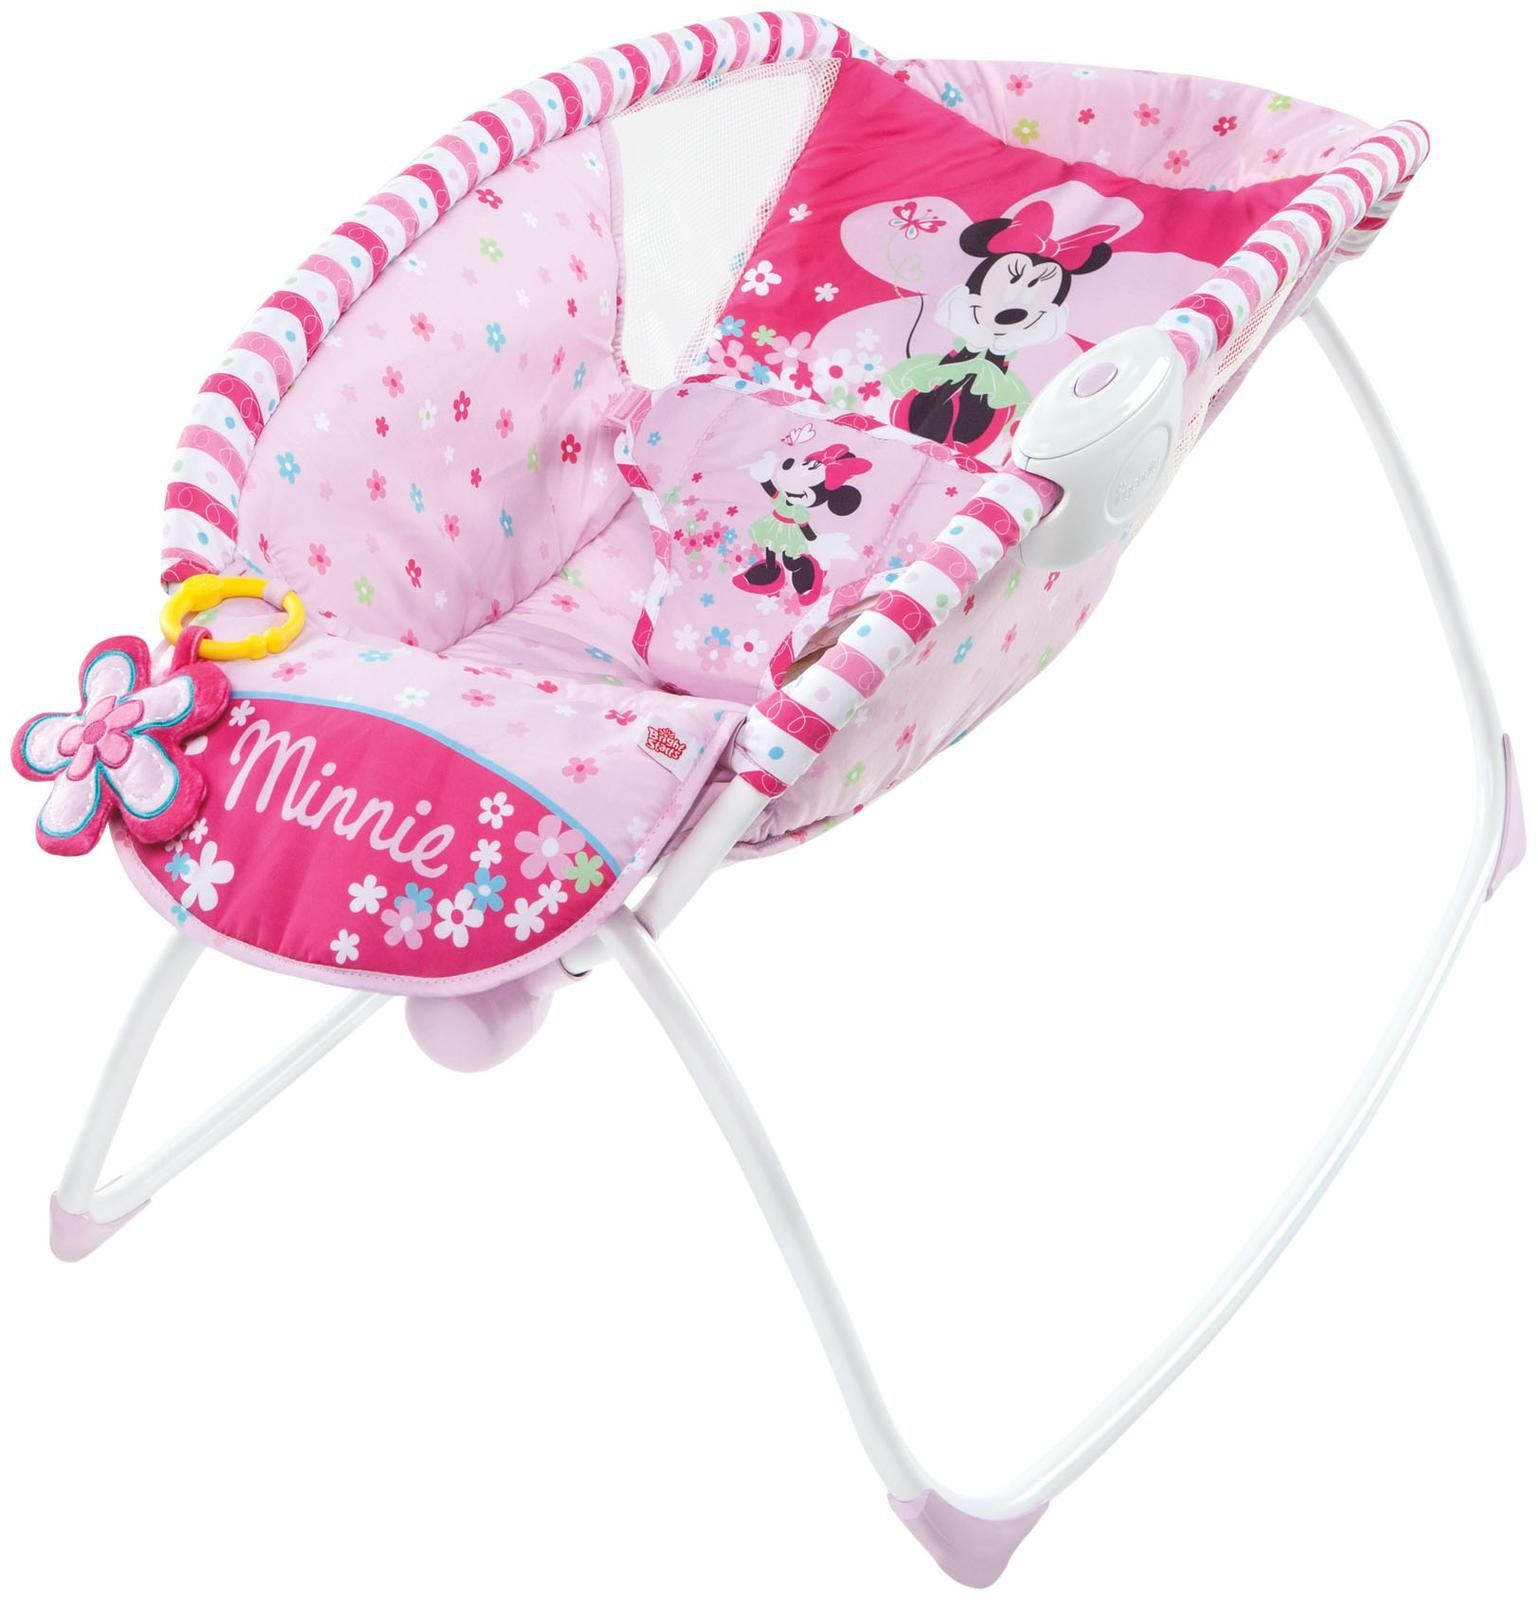 Sleep in style with the MINNIE MOUSE Bows & Butterflies sleeper